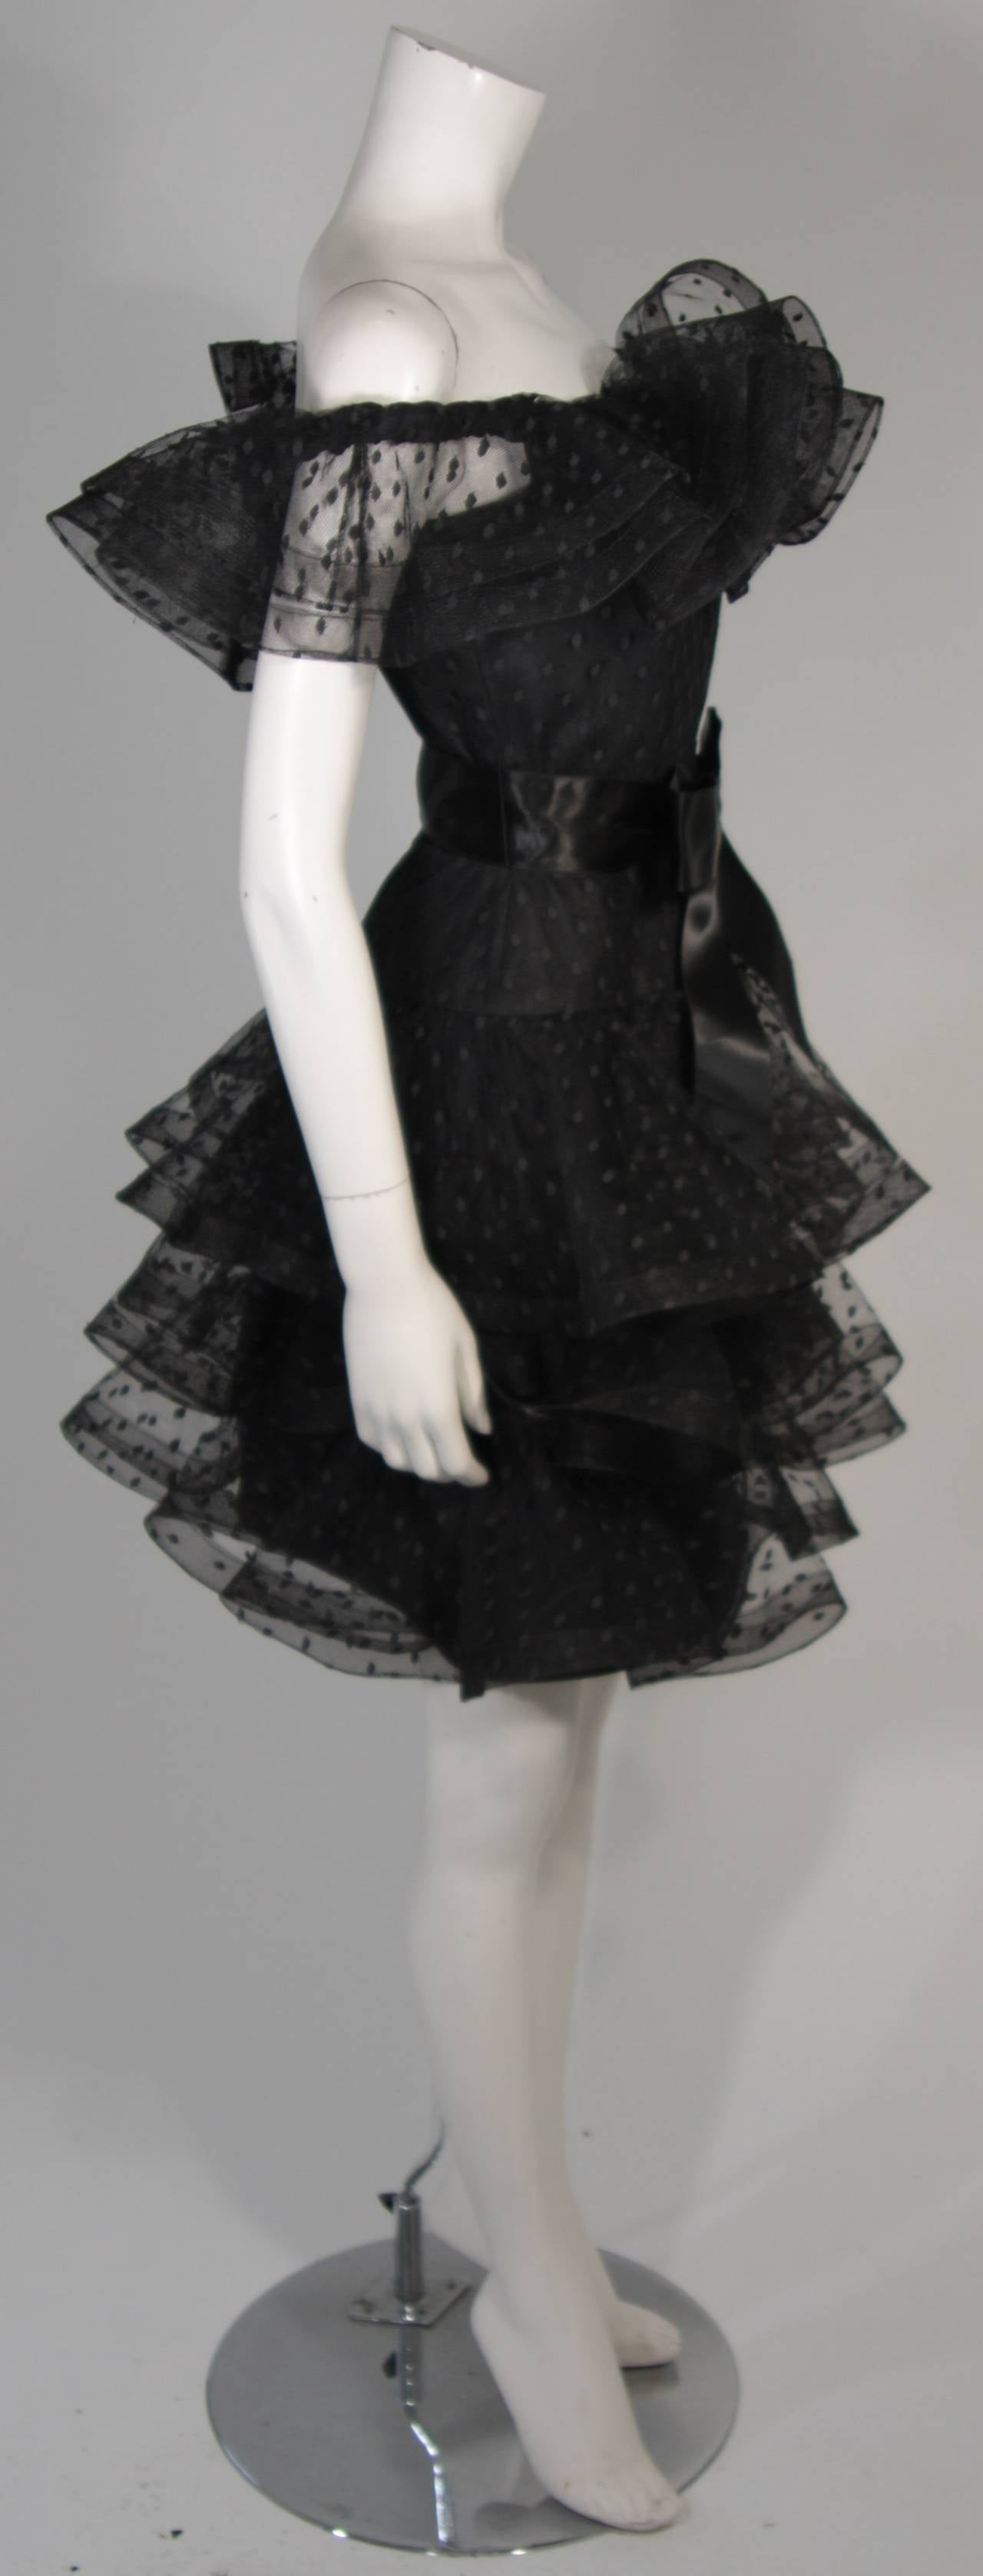 Victor Costa Black Cocktail Dress with Ruffled Horsehair Hemlines Size 2 For Sale 2